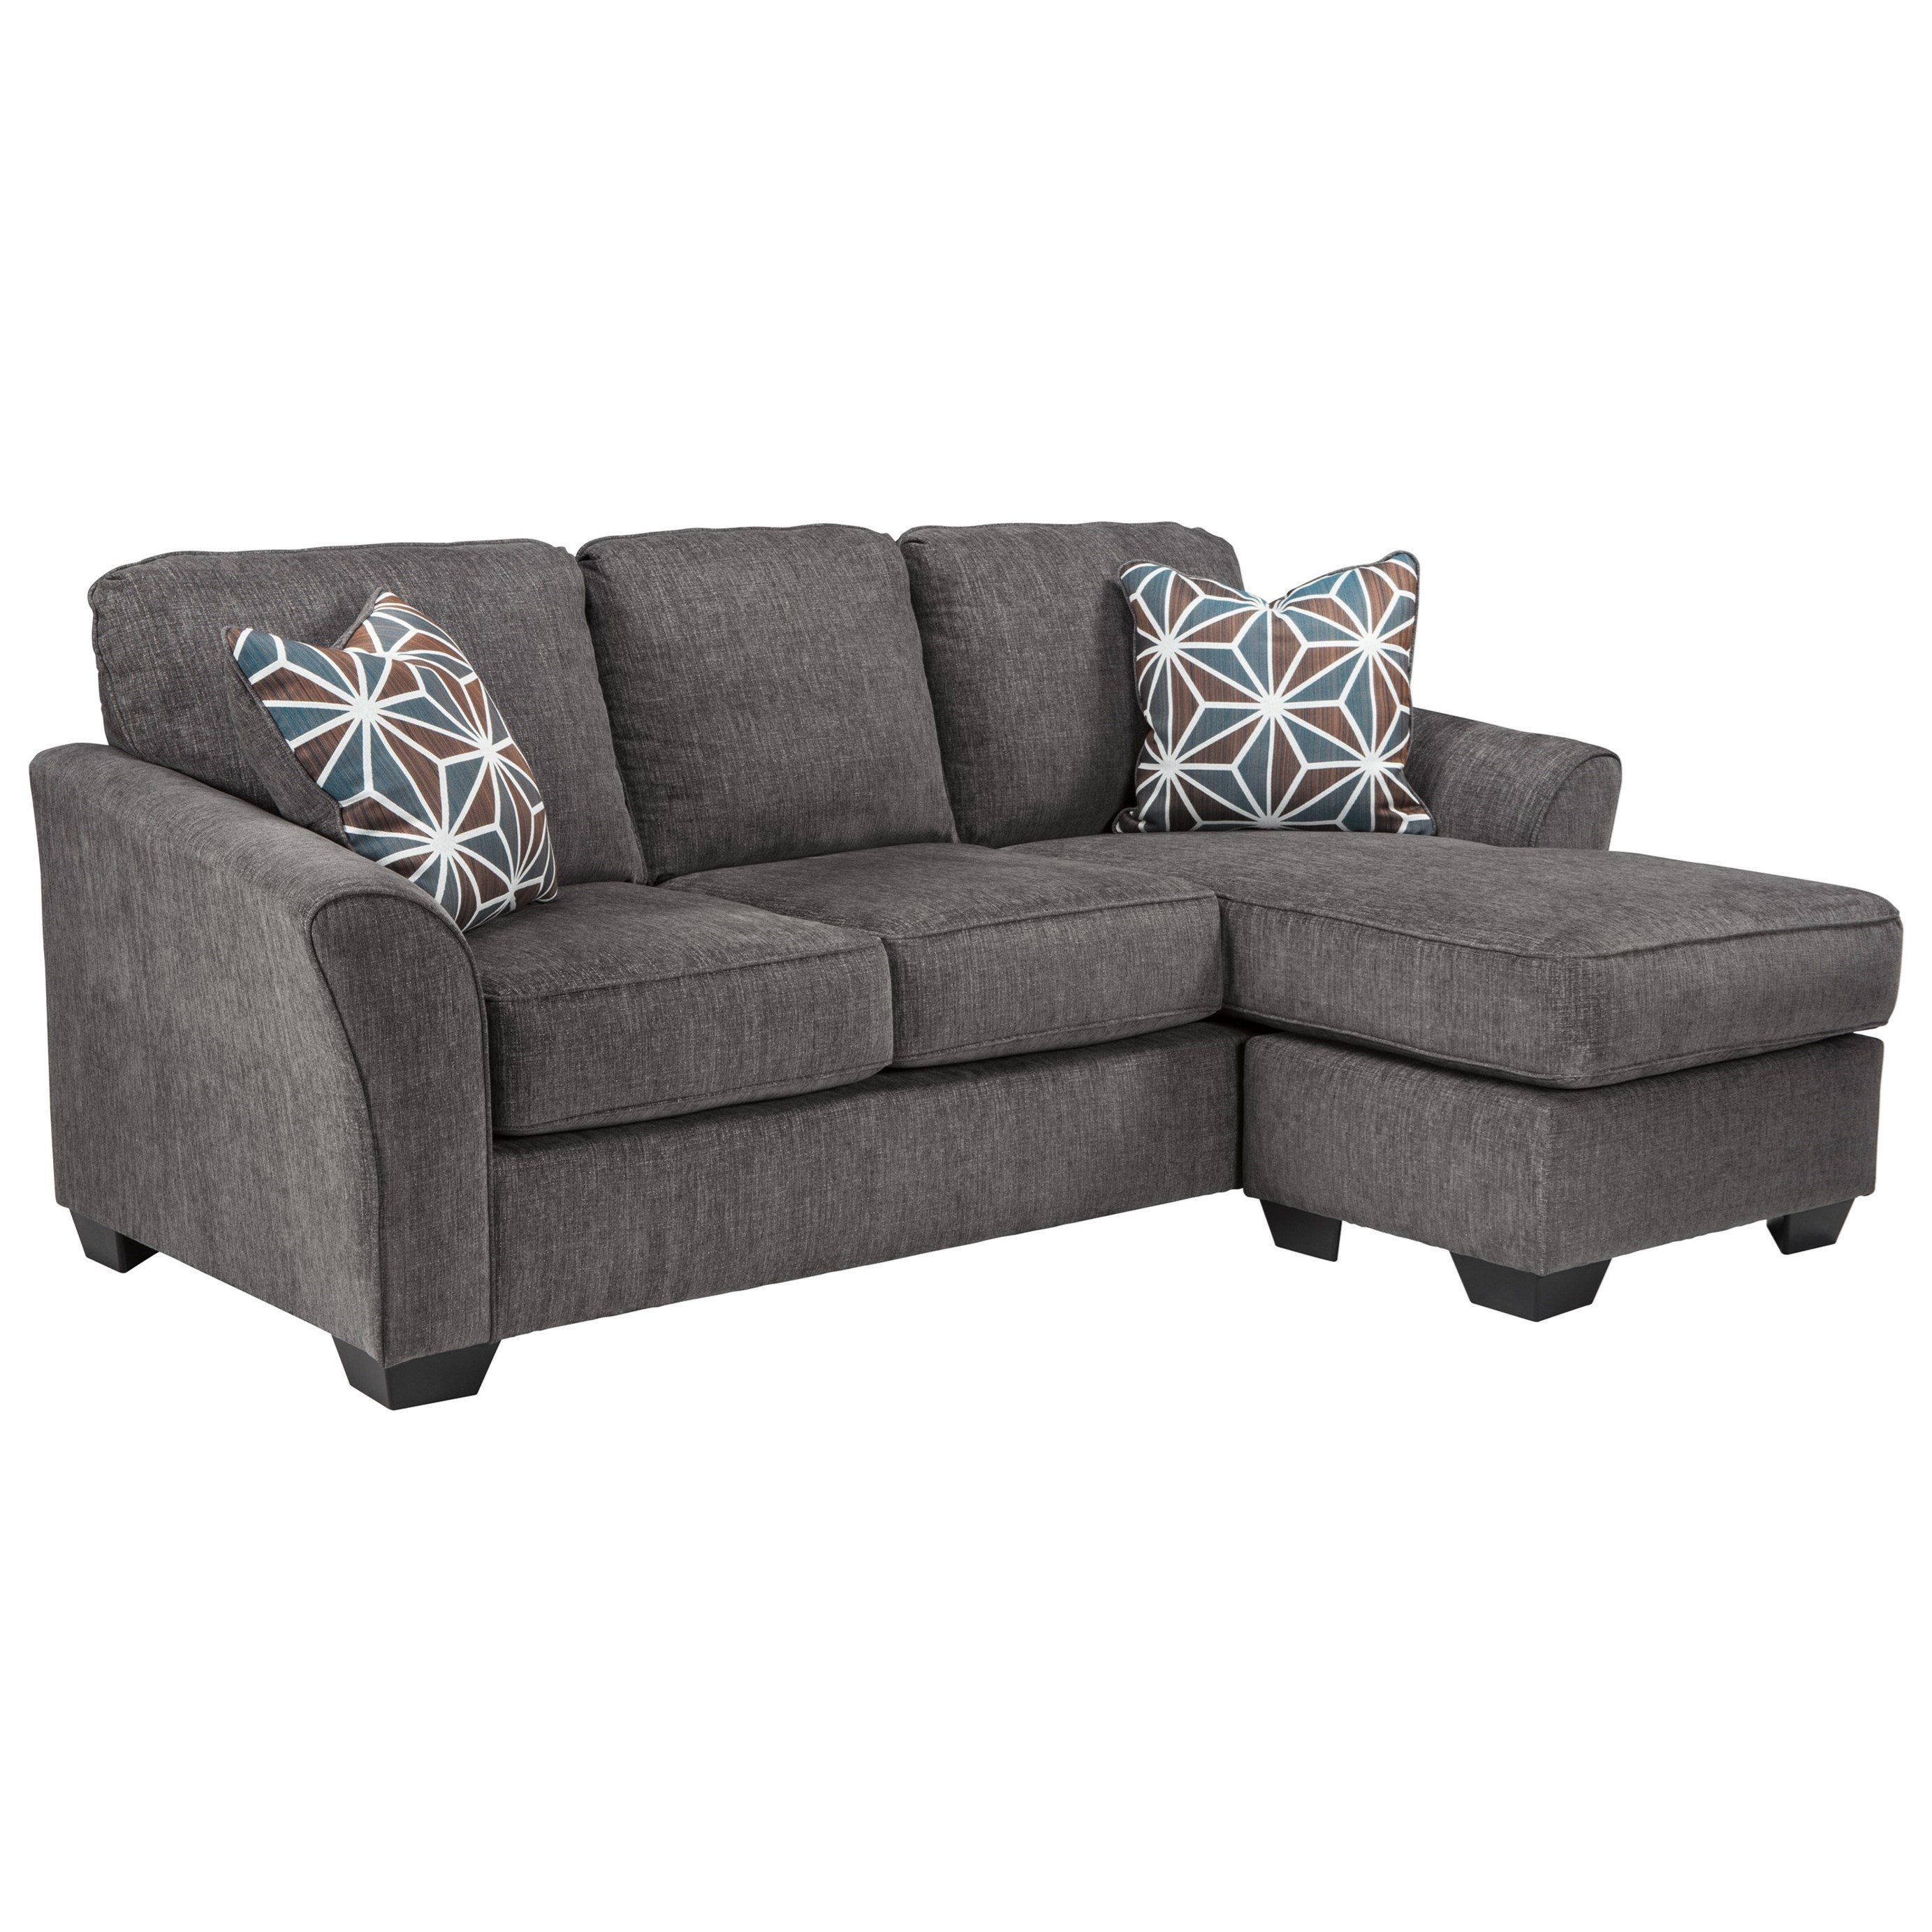 Contemporary Couch Brise Casual Contemporary Sofa Chaise By Ashley At Becker Furniture World